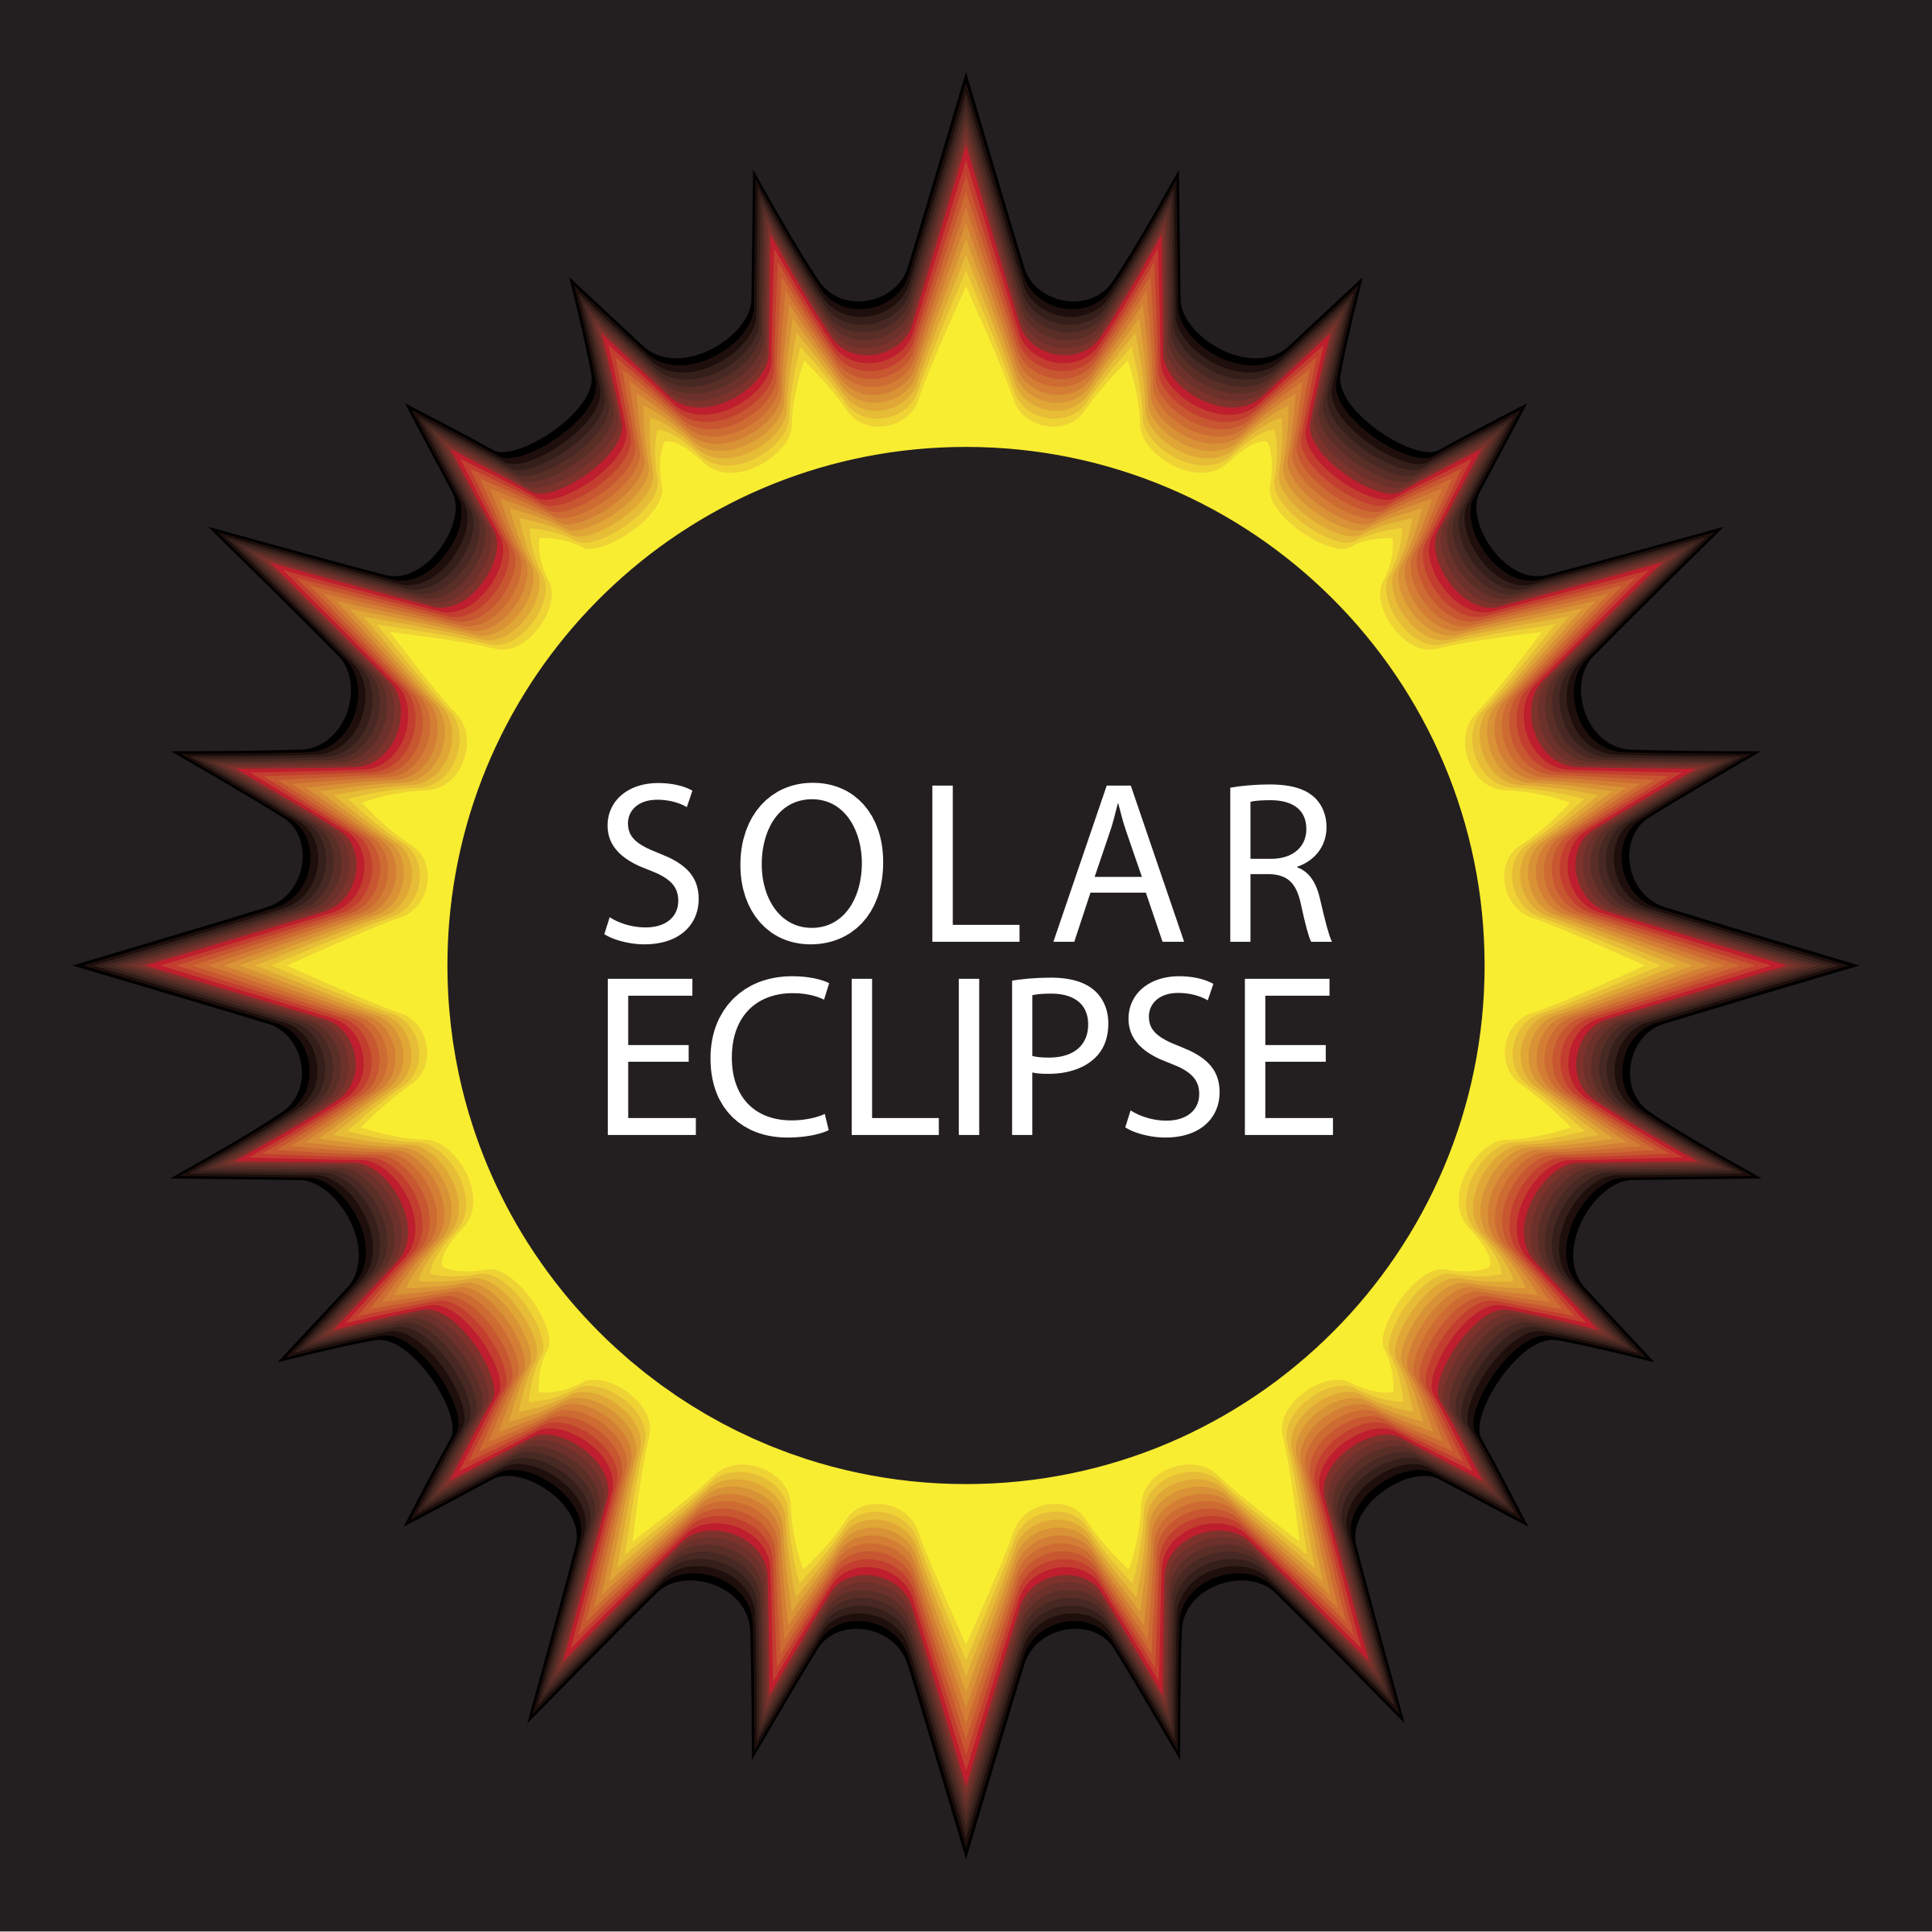 Eclipse clipart svg. Solar complete icons png